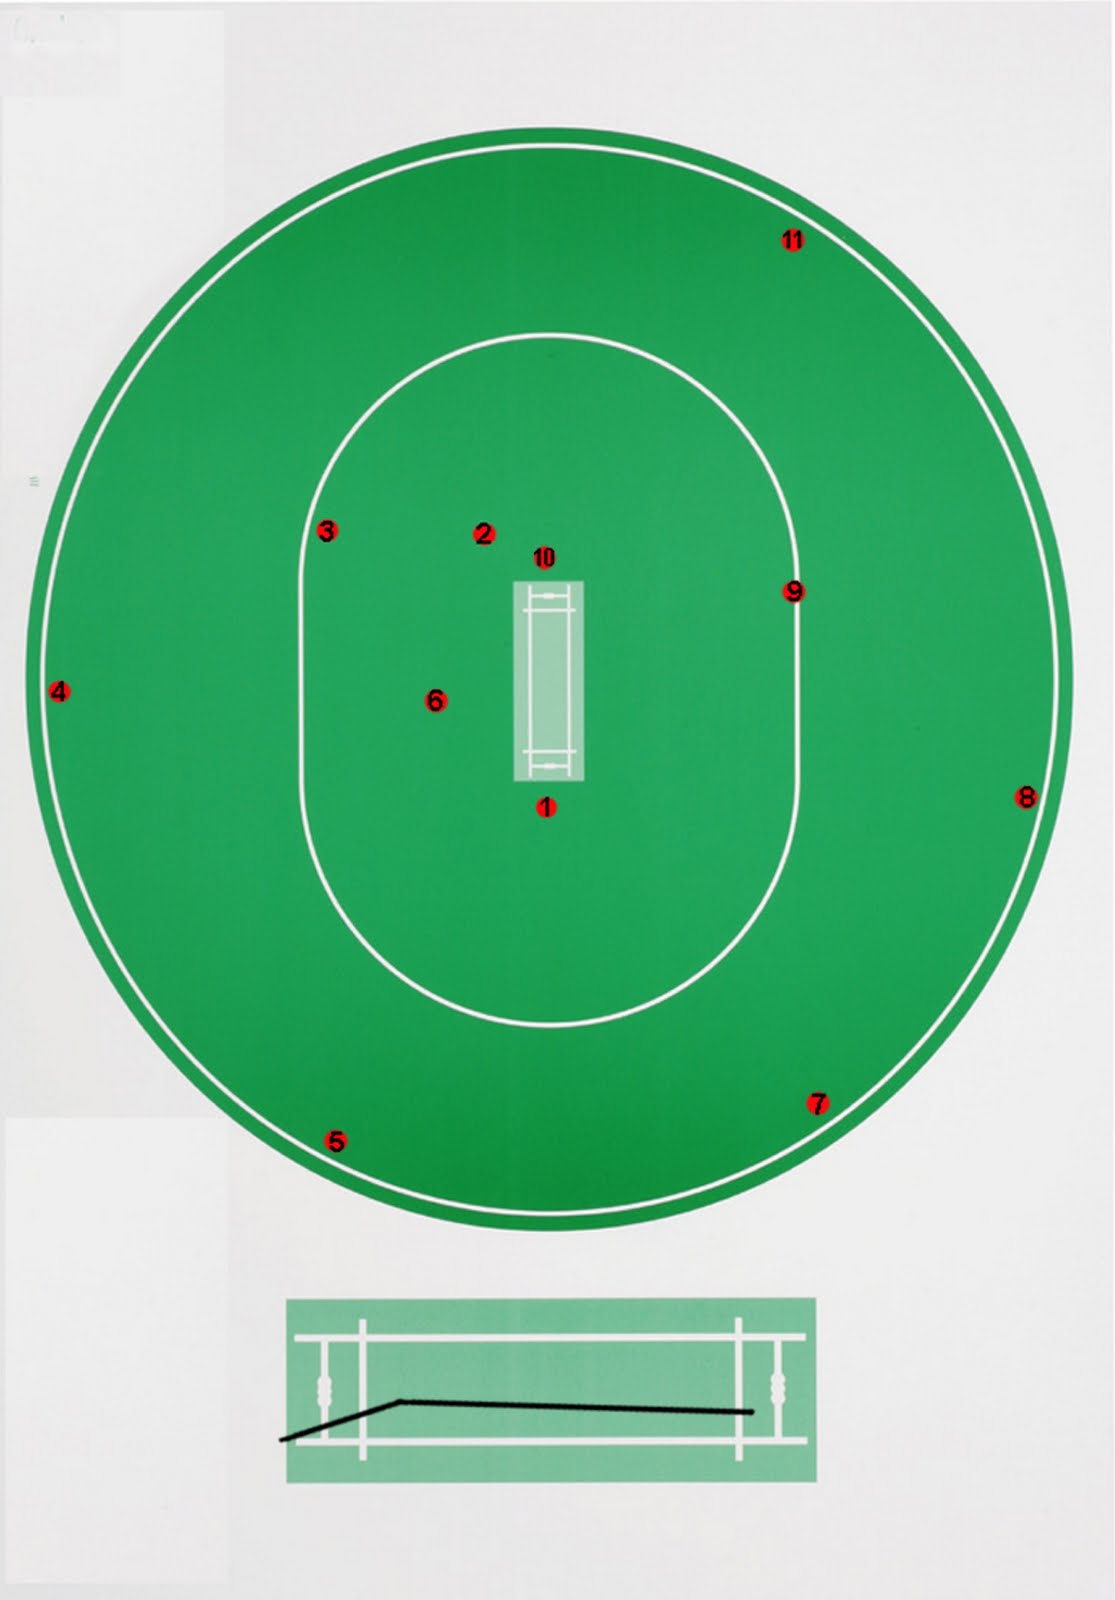 medium resolution of here s another warne field for t20 not a great deal of difference from the former post the only real difference is that the cover fielder is a lot closer